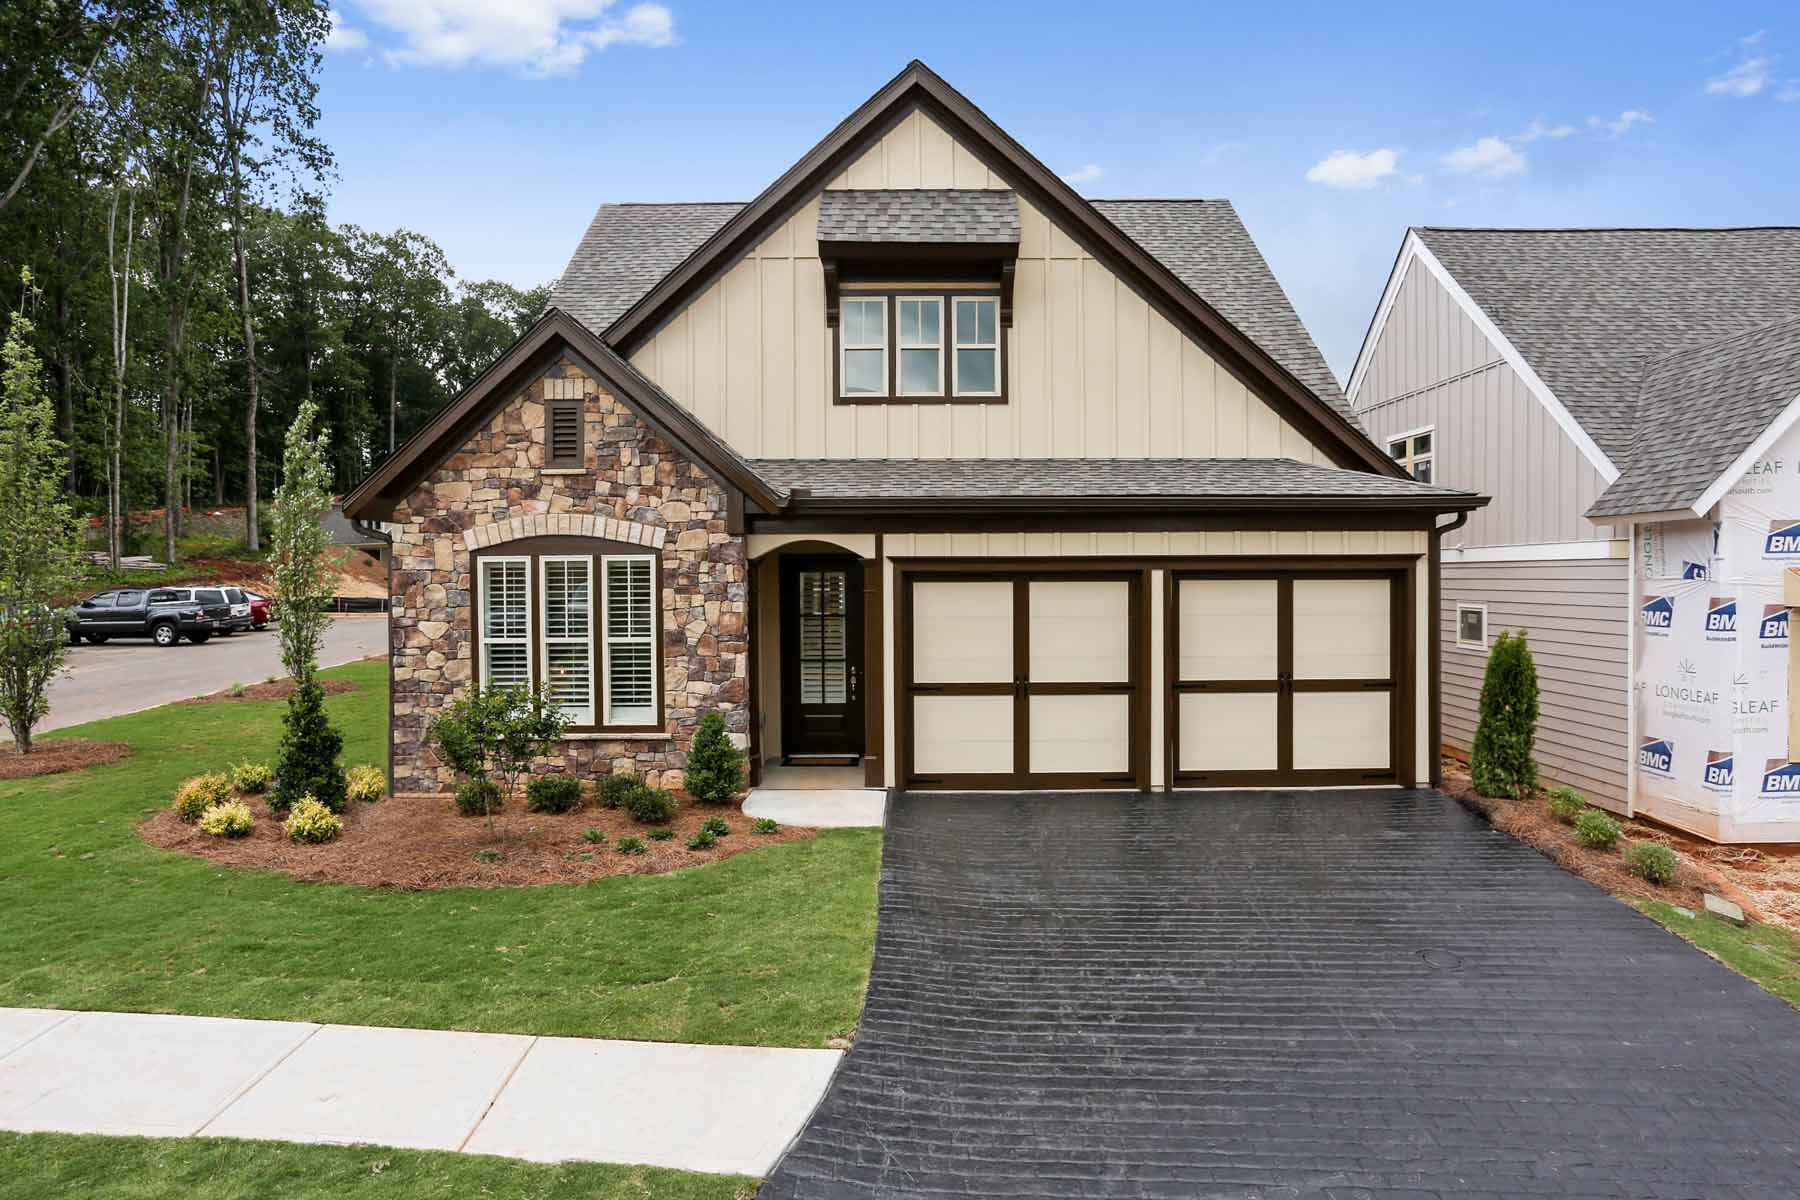 واحد منزل الأسرة للـ Sale في Open Plan in Gated 55+ Community 116 Foxtail Road, Marietta, Georgia, 30064 United States